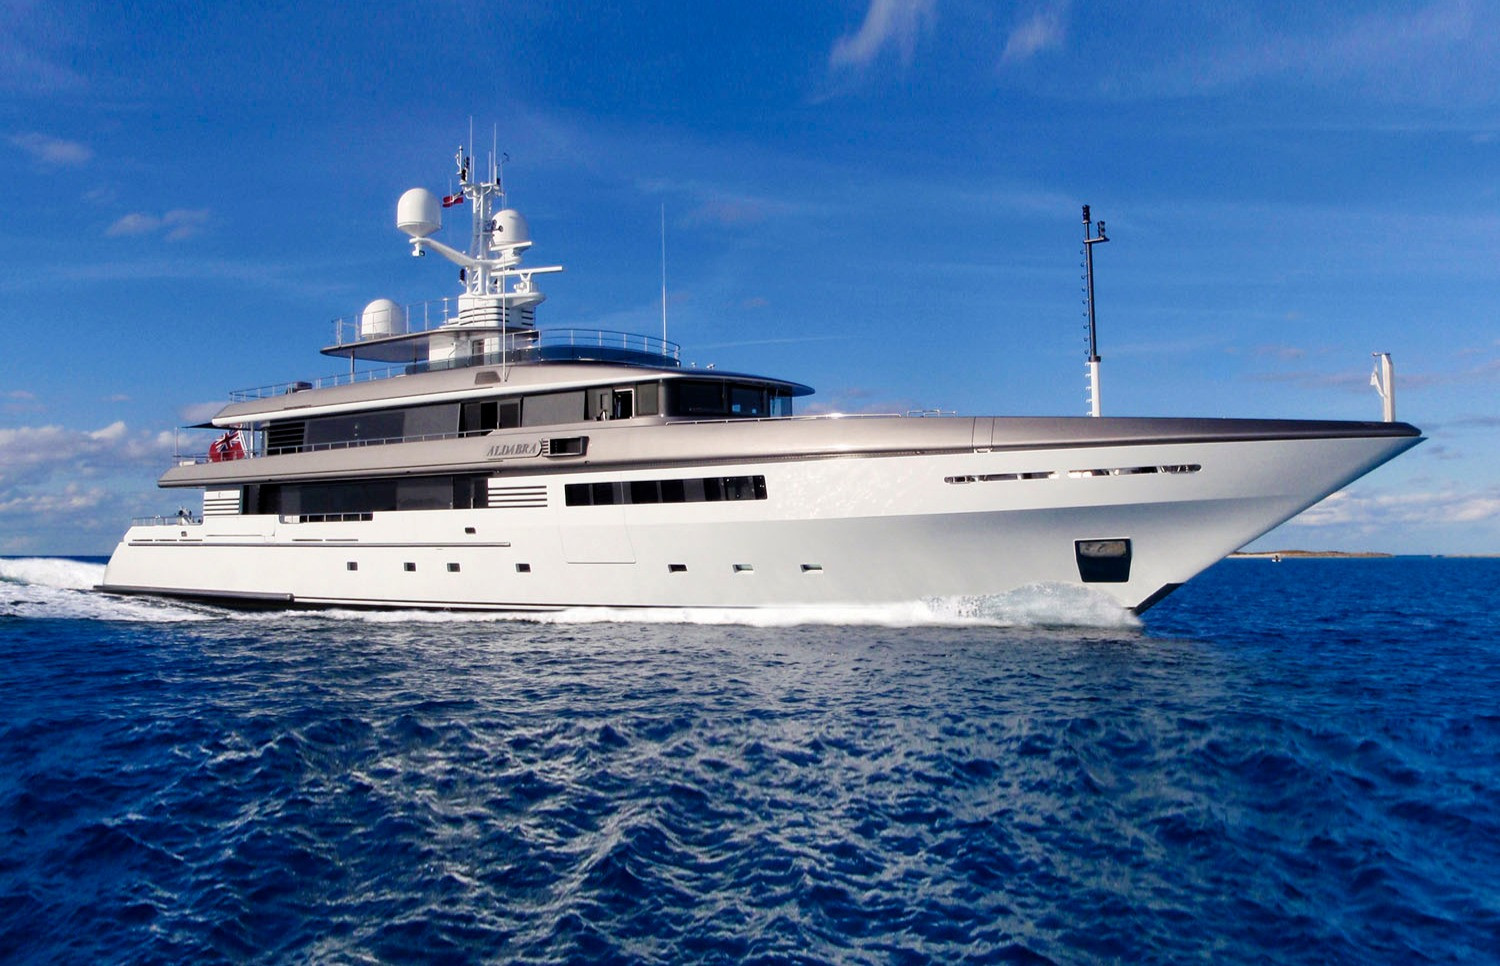 Yacht ATLAS - cruising on charter